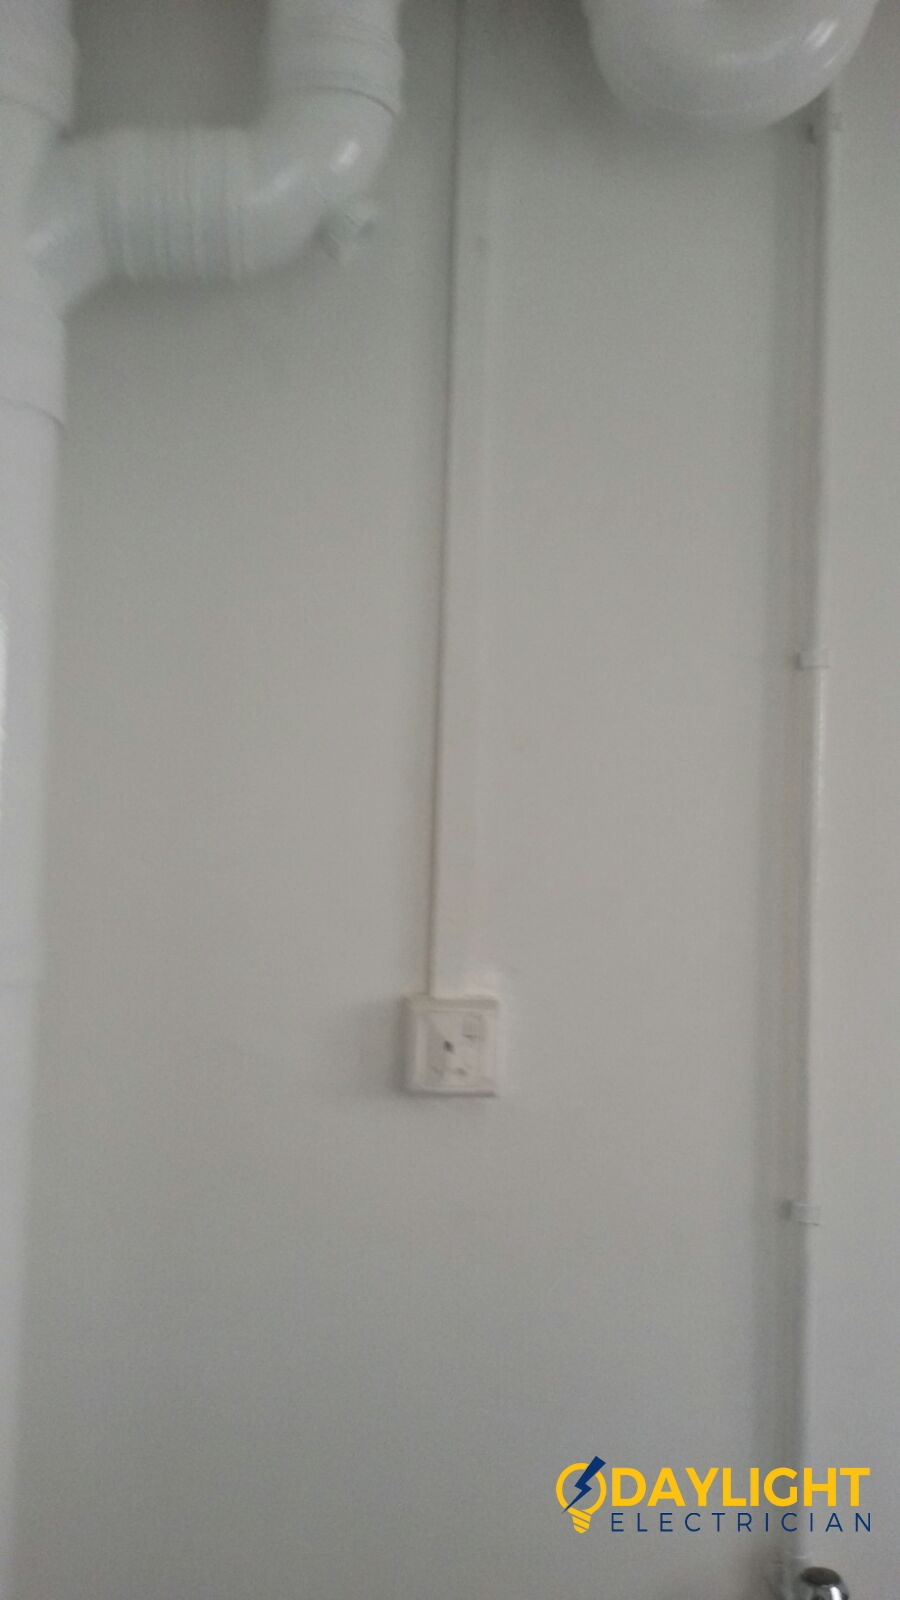 Install-new-power-socket-electrician-singapore-HDB-canberra-road-sembawang